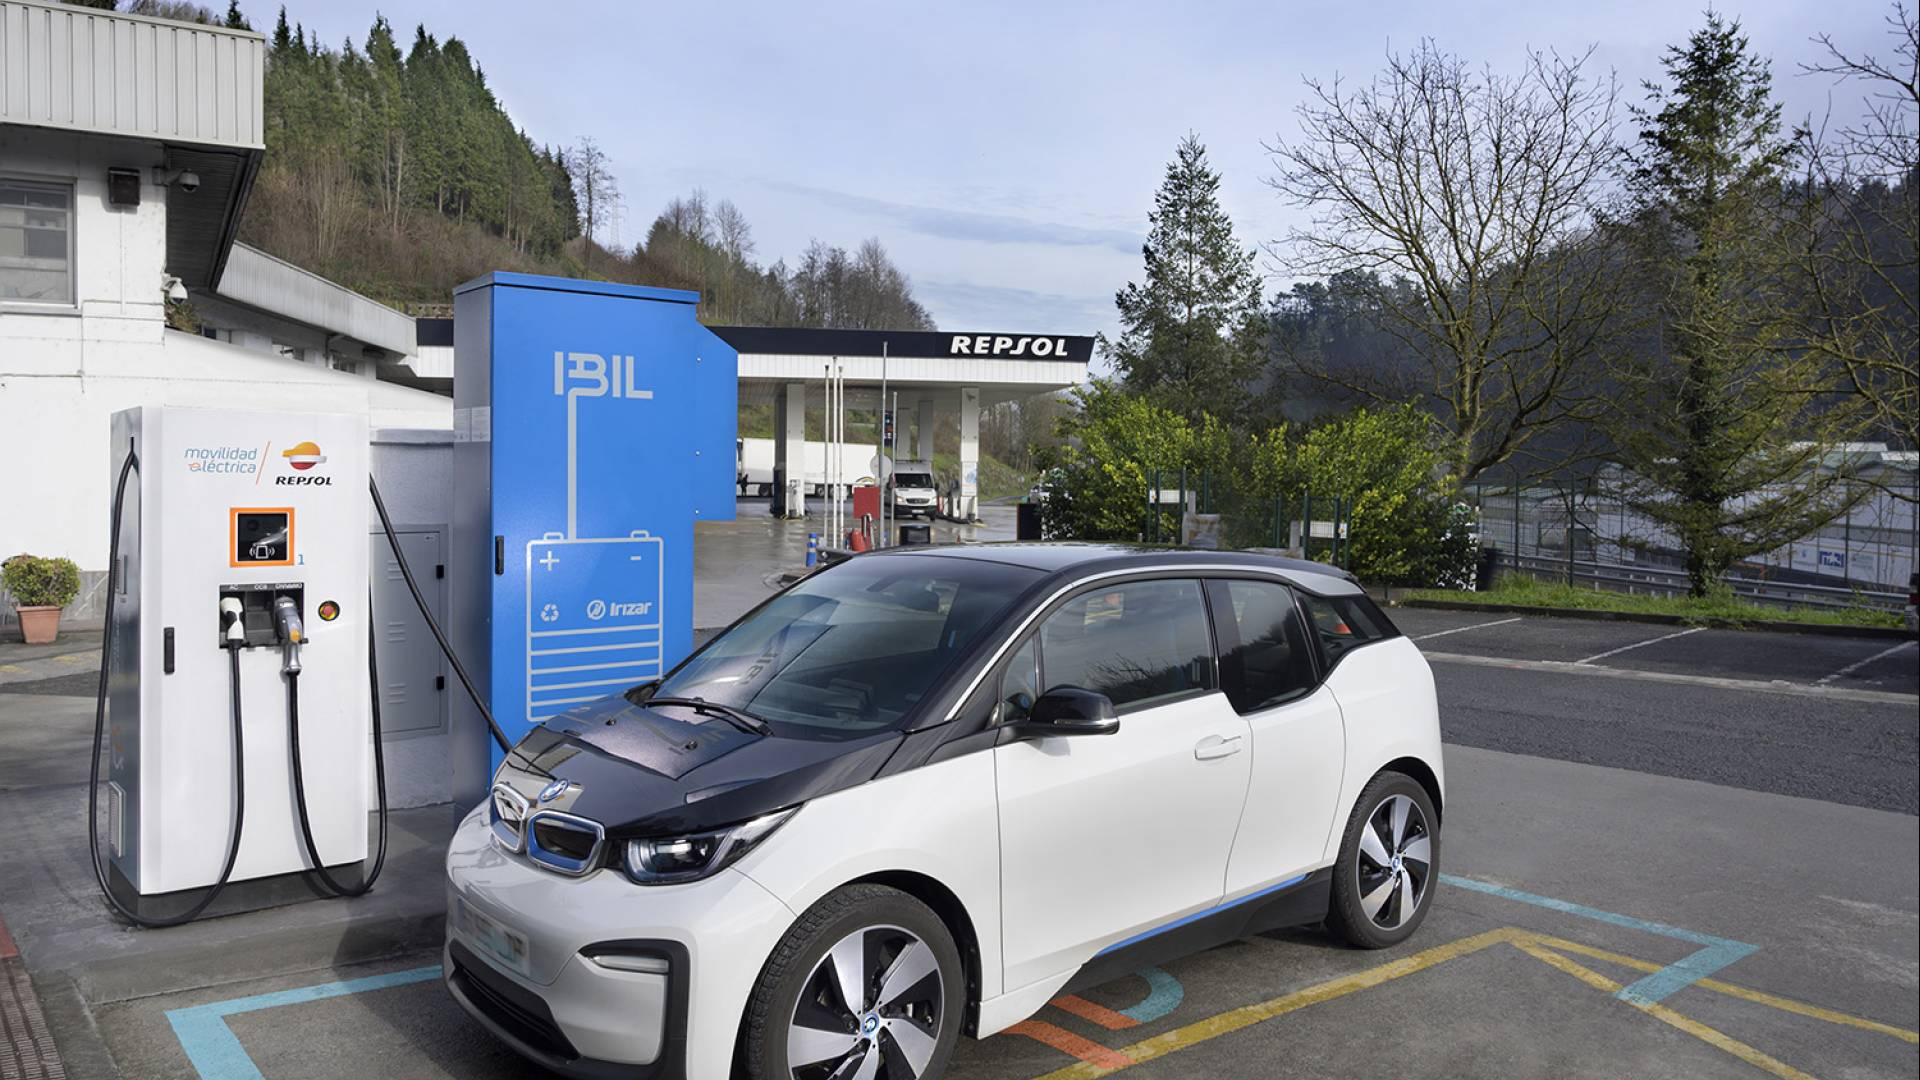 The first charging station for electric vehicles using second life batteries from Irizar e-mobility is in service